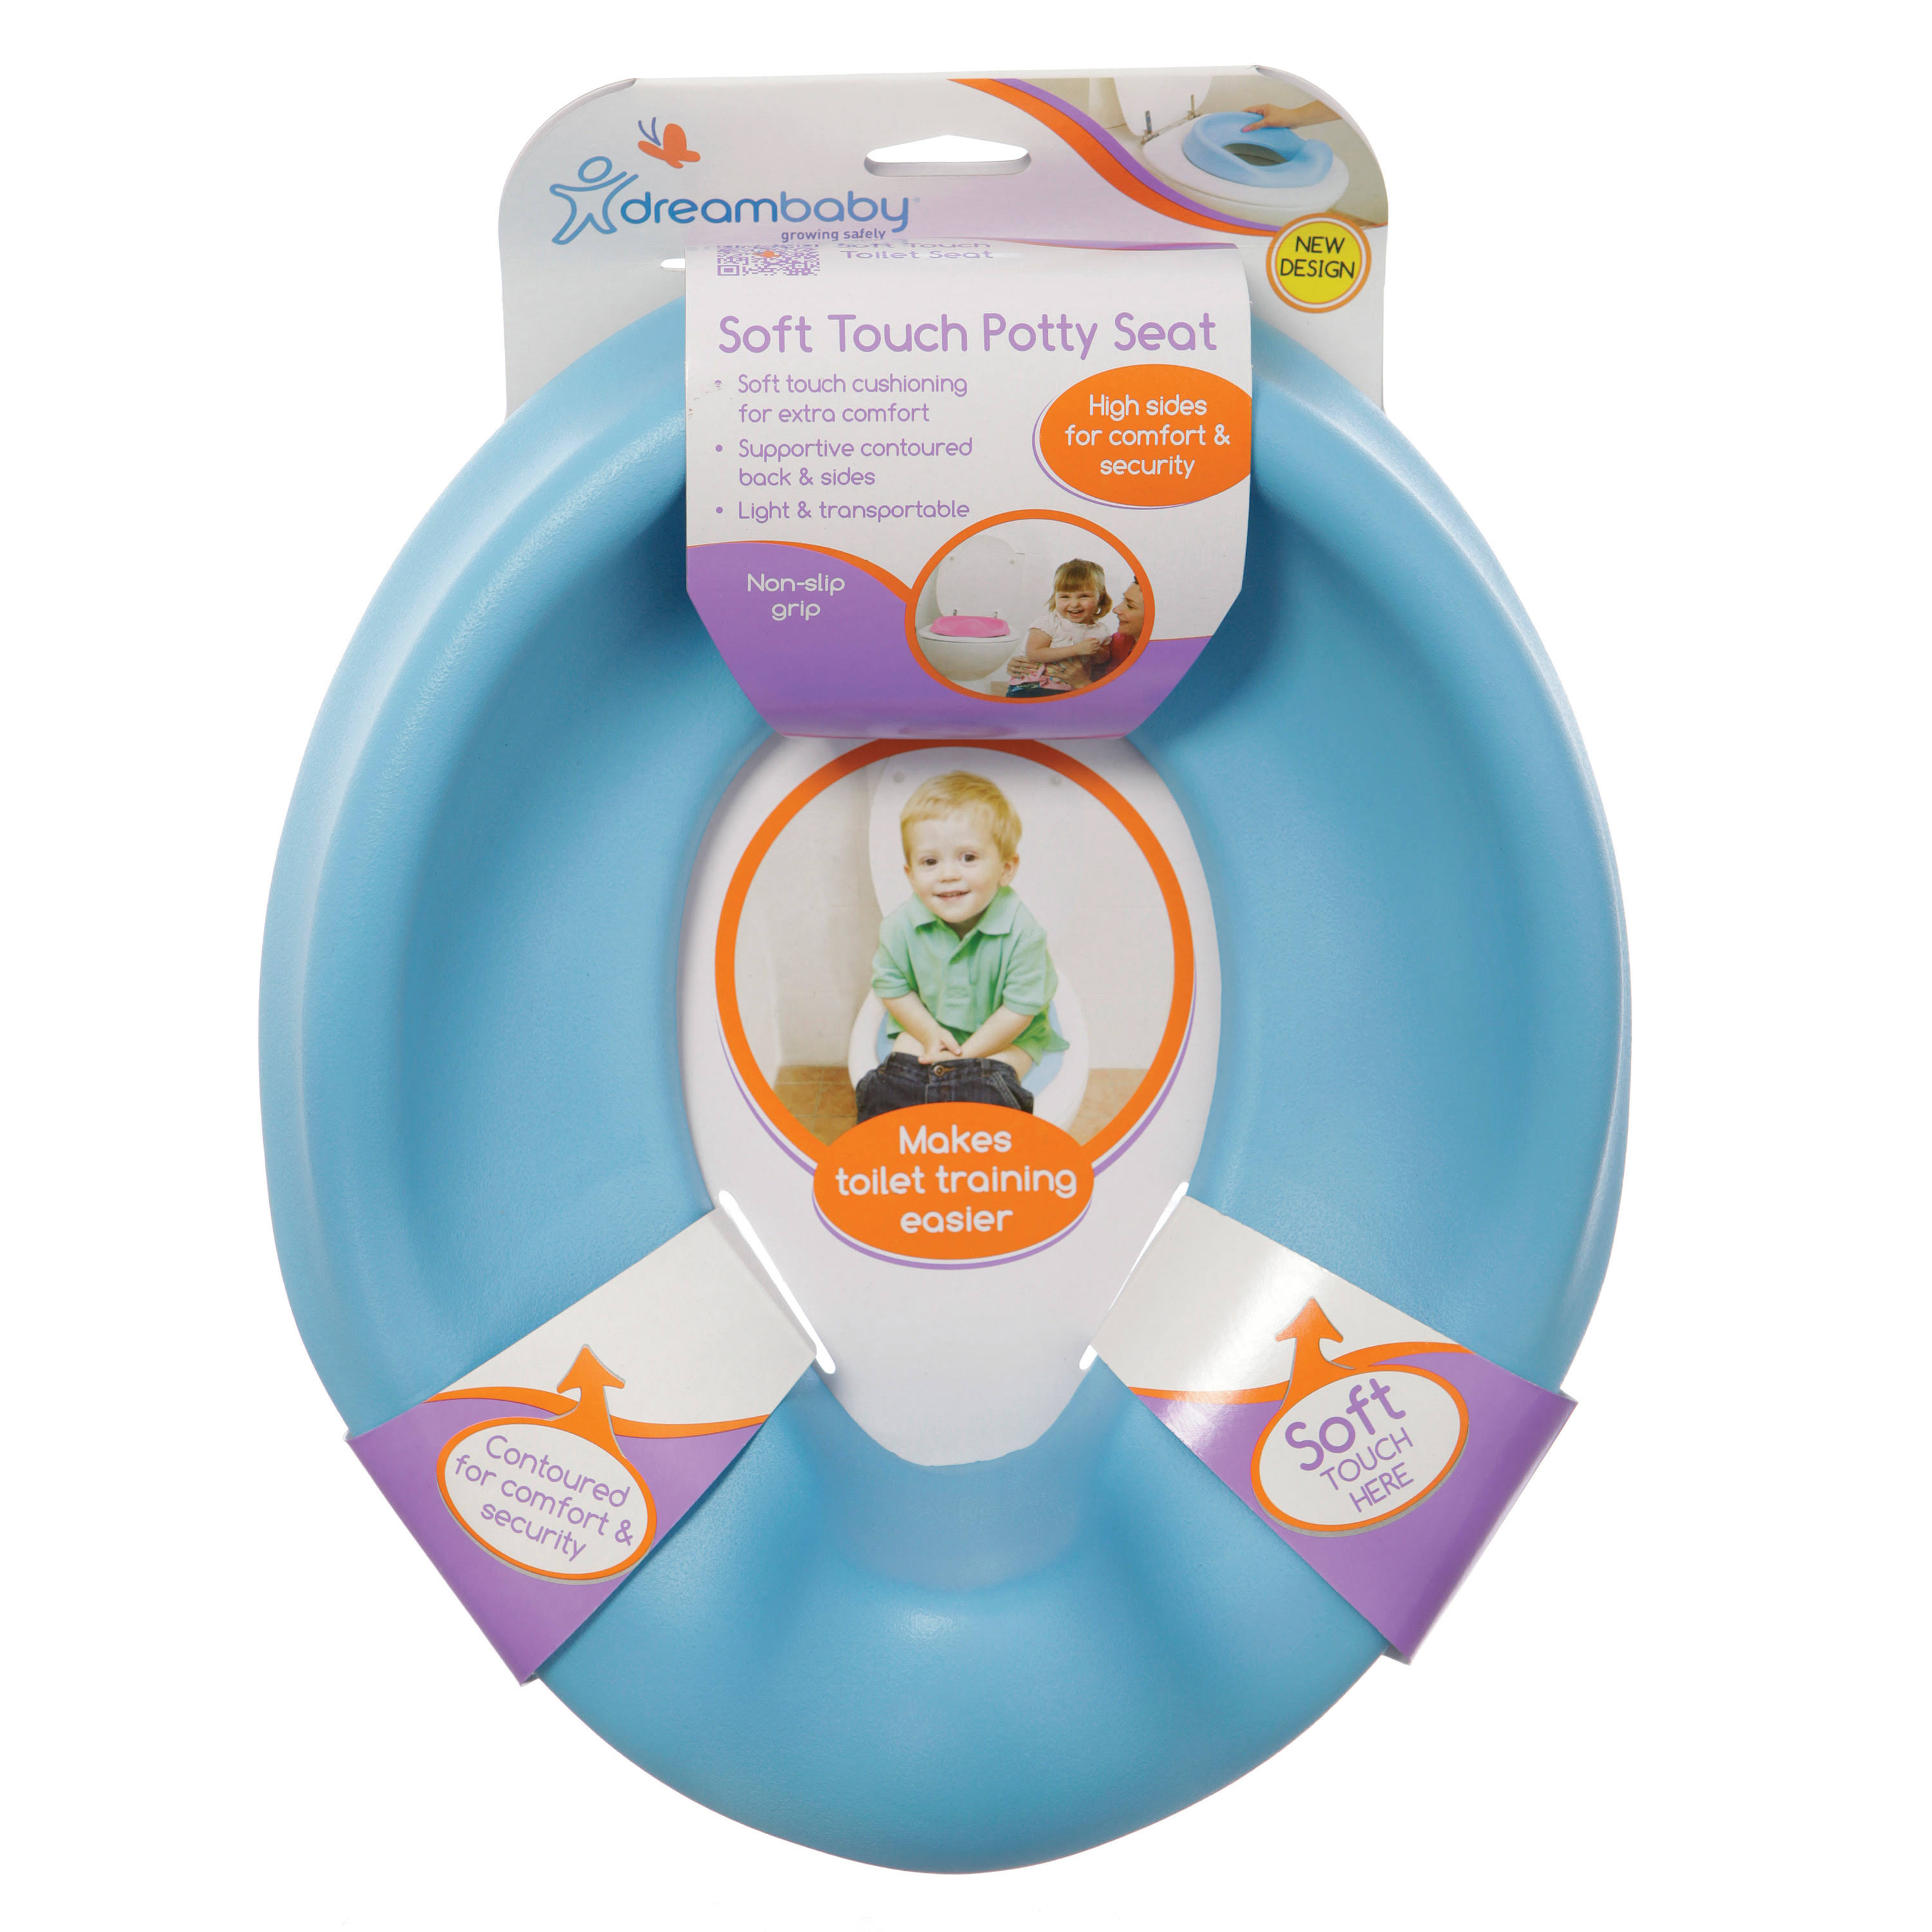 Dreambaby Soft Touch Potty Seat (Blue)